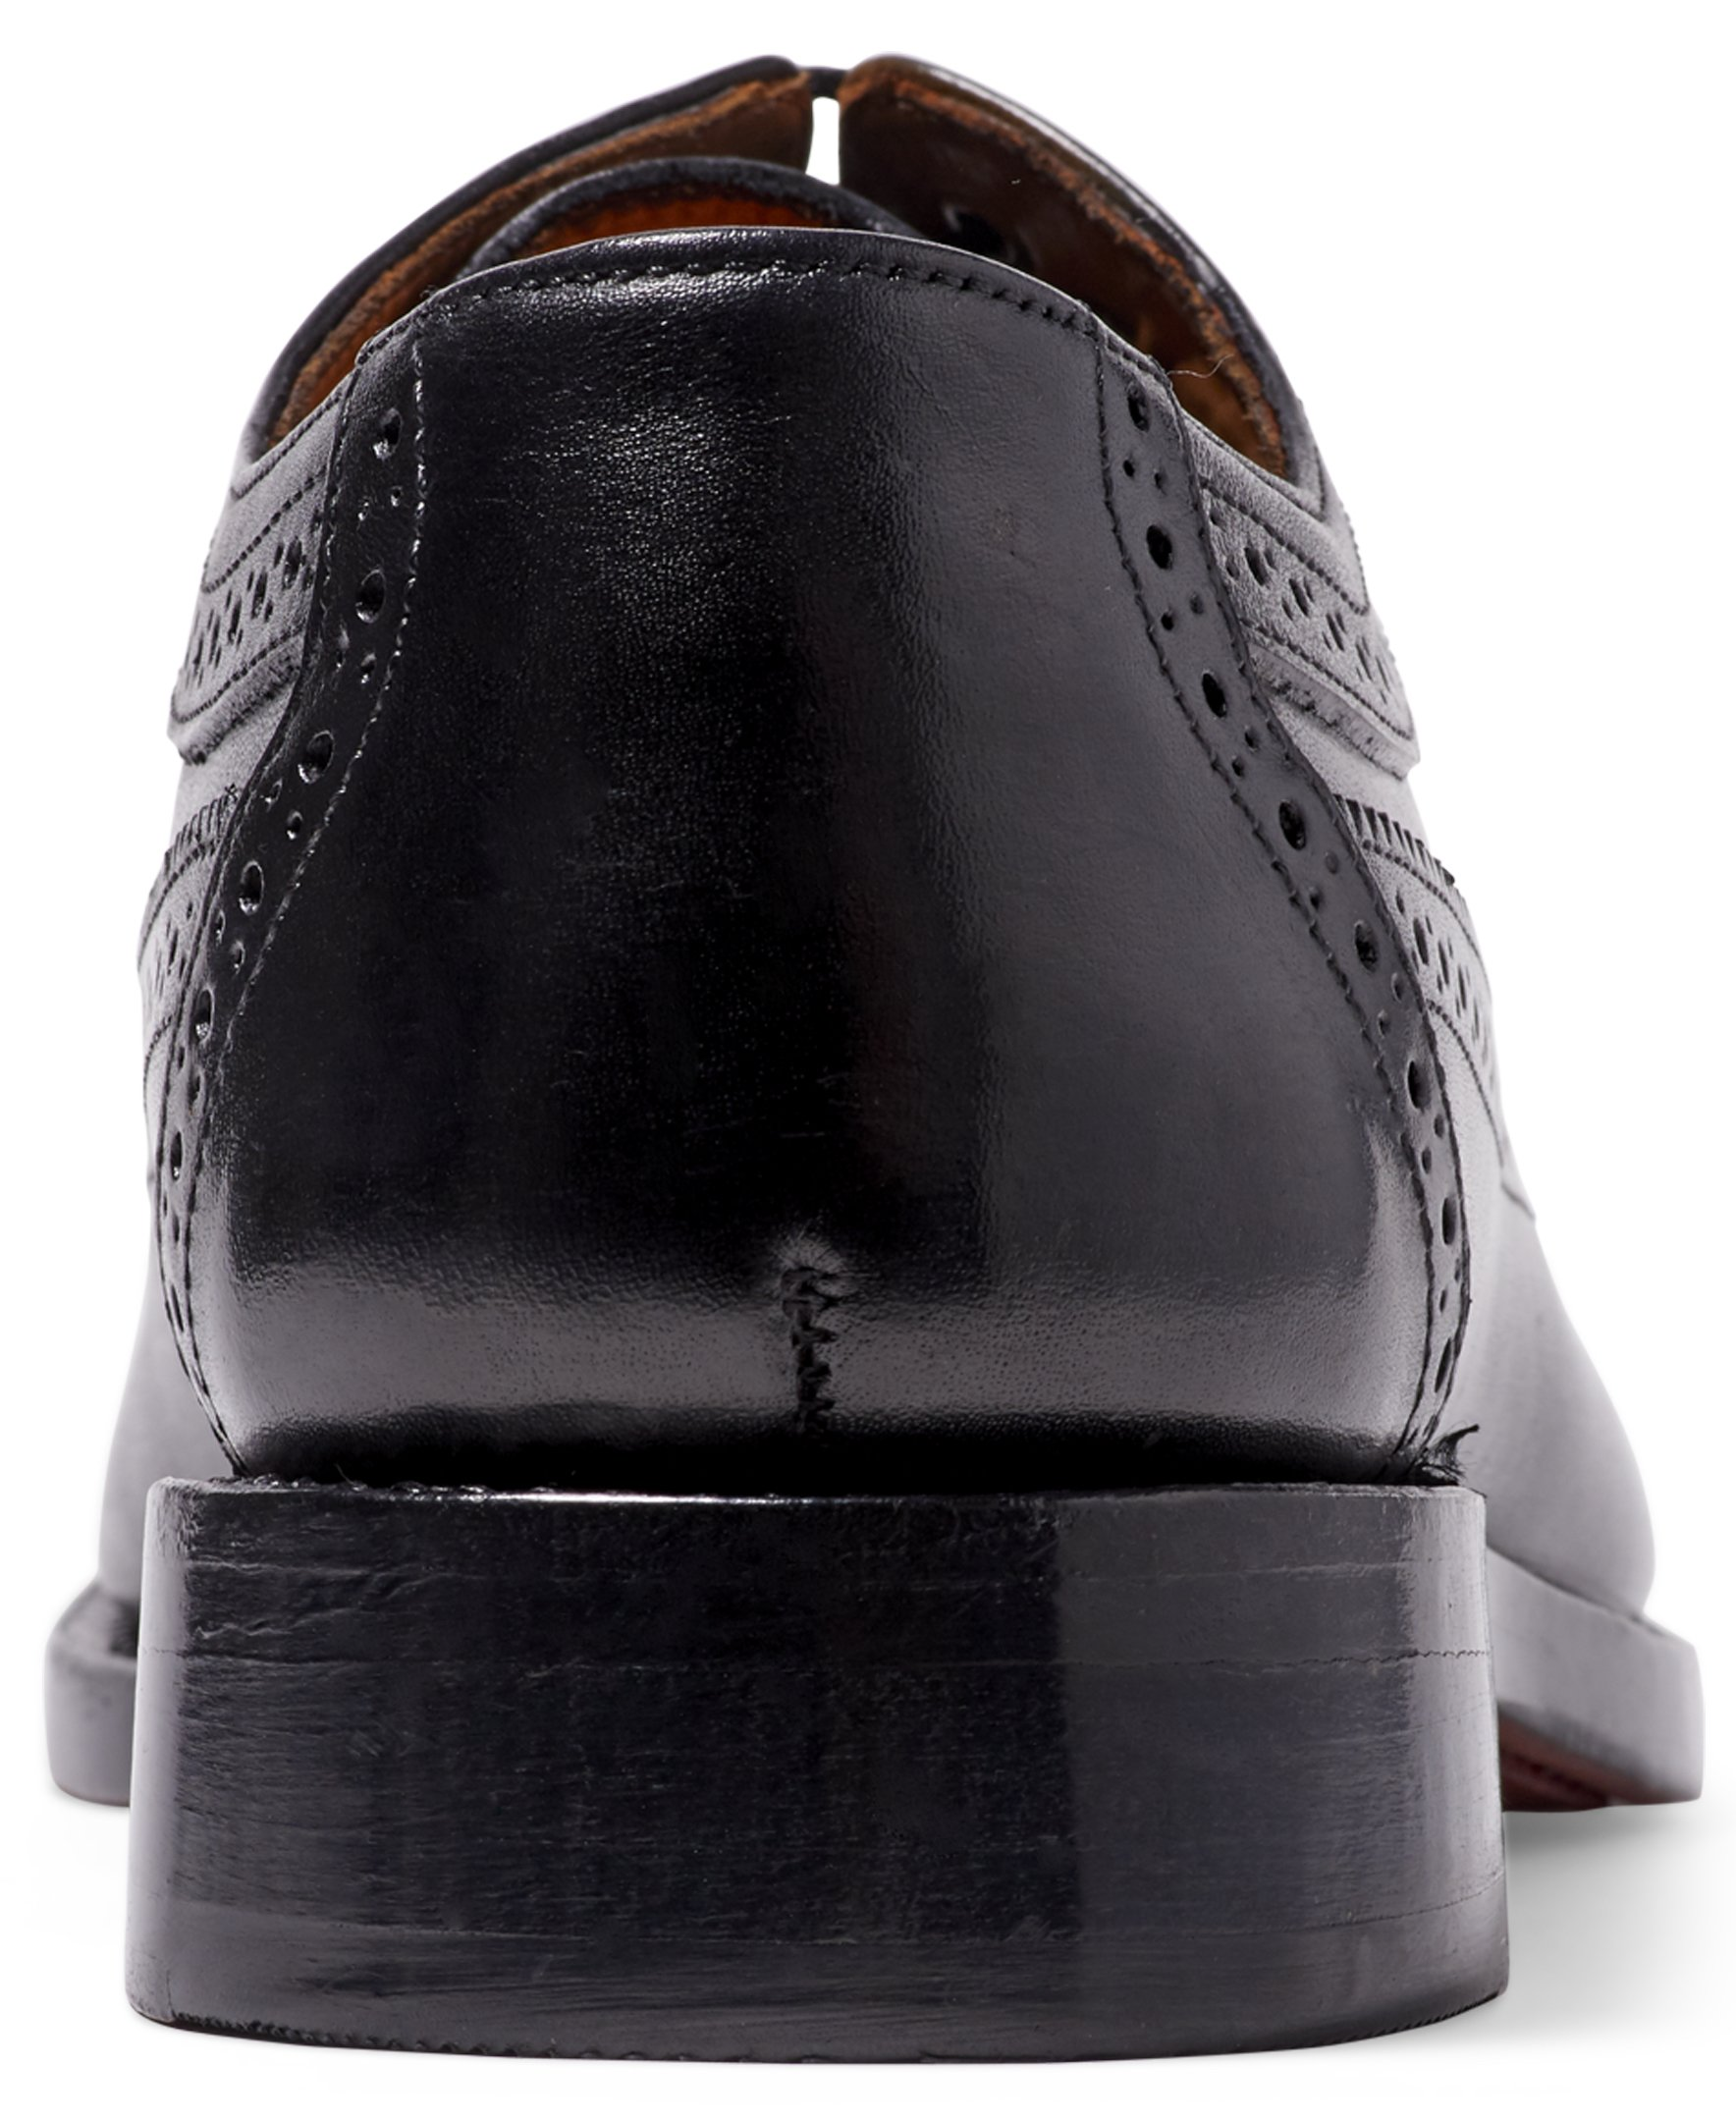 Anthony Veer Mens Regan Oxford Full Brogue Leather Shoes in Goodyear Welted Construction (8.5 D, Black) by Anthony Veer (Image #3)